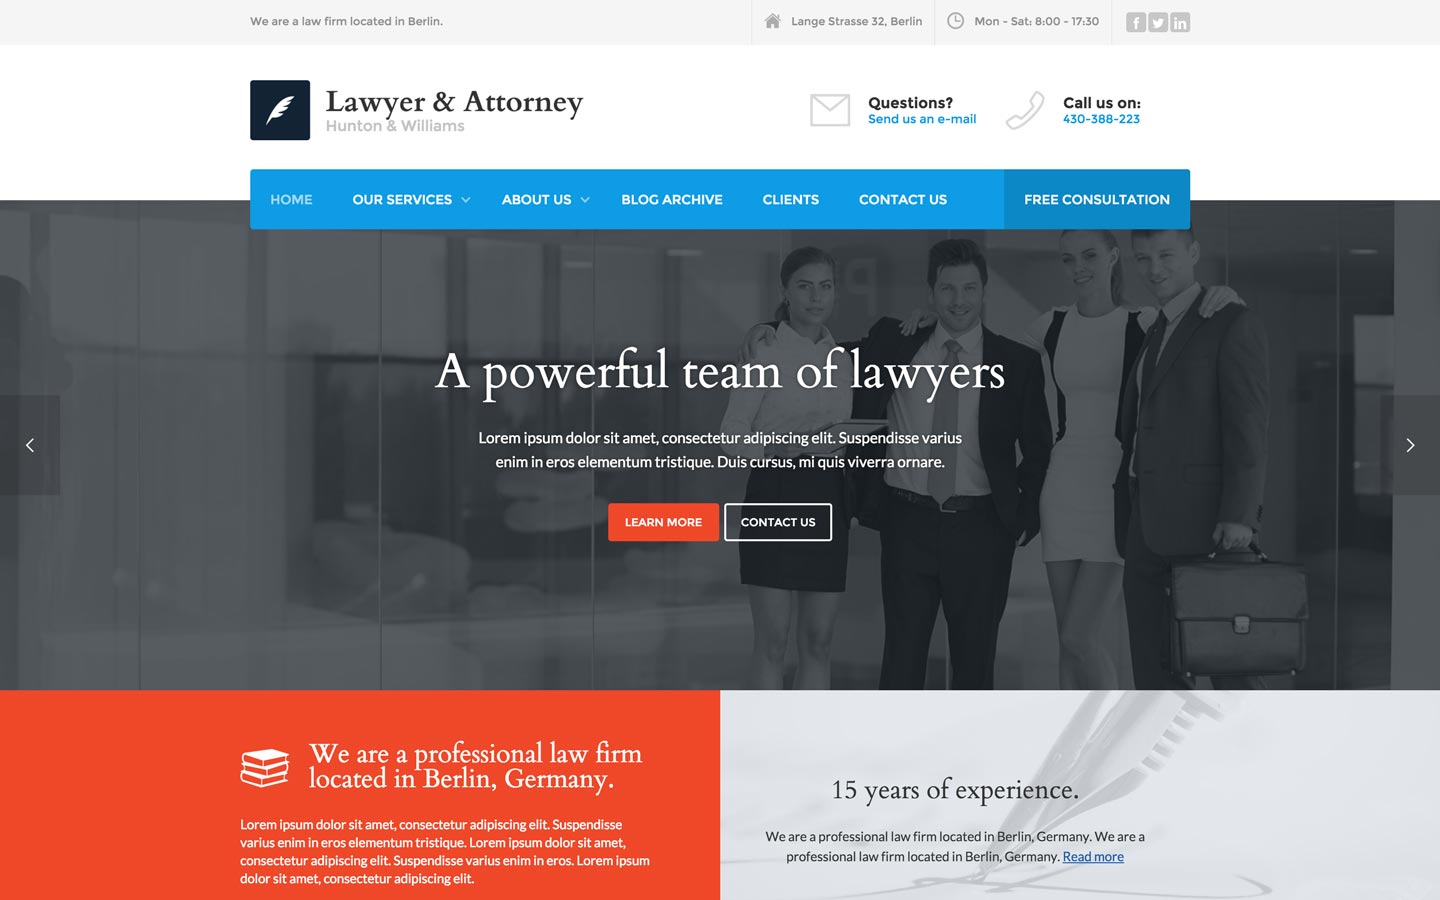 Lawyer and Attorney - Law Firm HTML5 Responsive Website Template